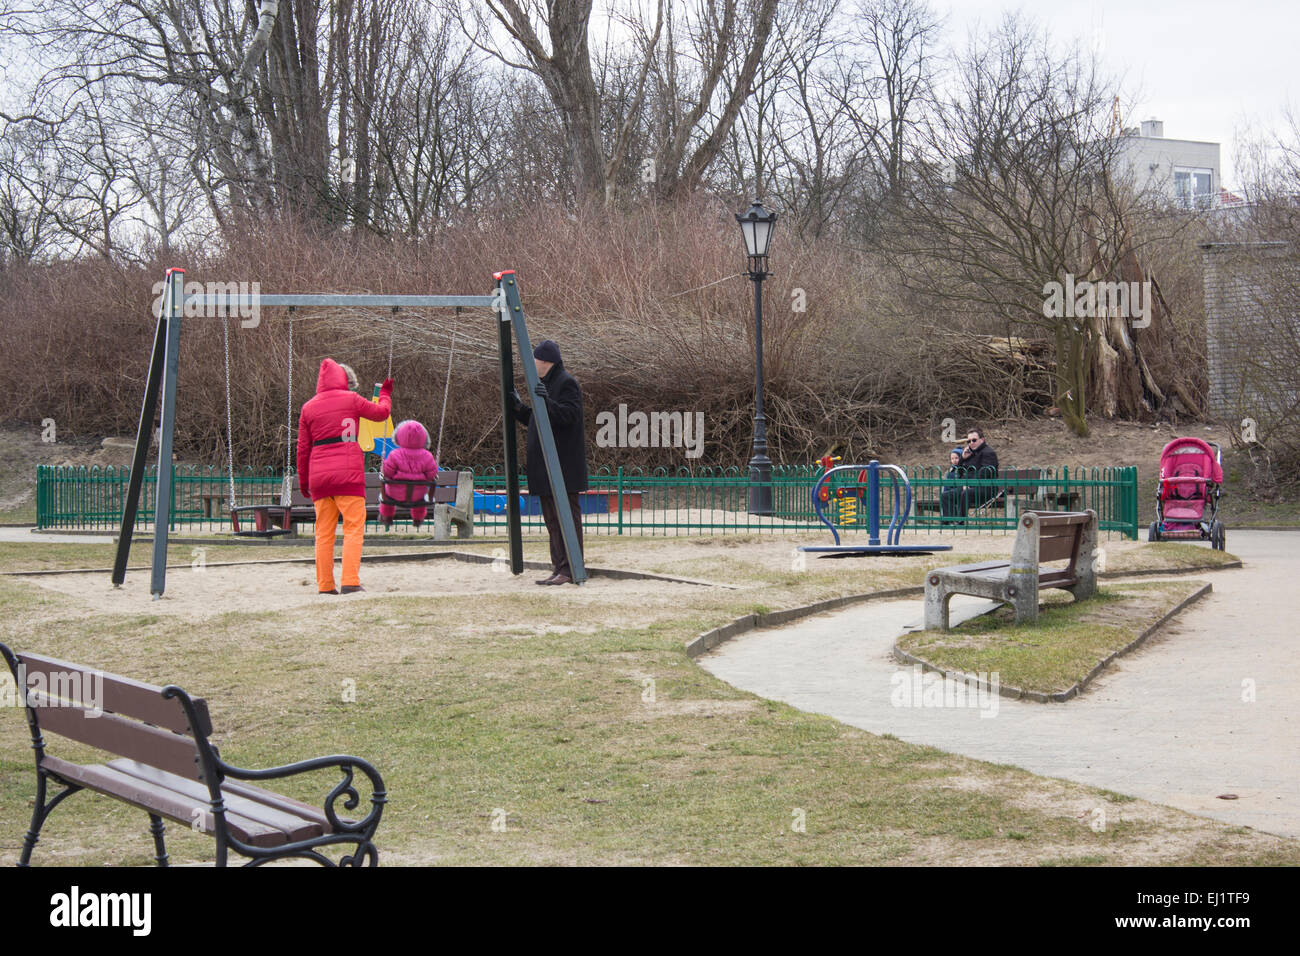 Playground - Stock Image